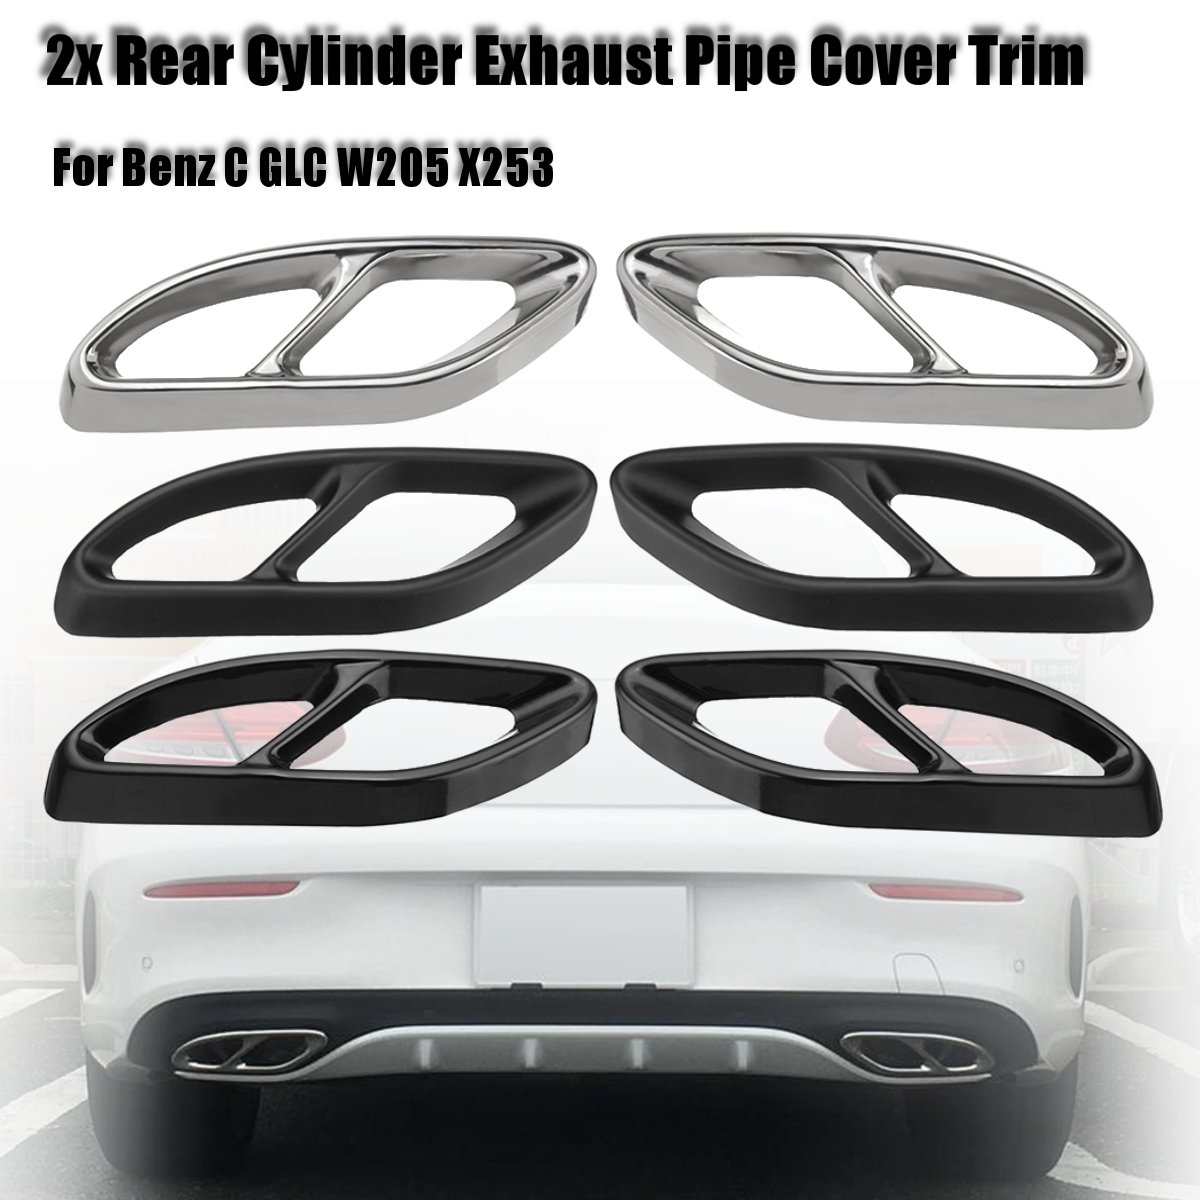 Carbon Black Car Rear Dual Exhaust Pipe Stick Covers Auto Exhaust Muffler Trim For Benz C GLC W205 X253 2015 2016 2017 2018